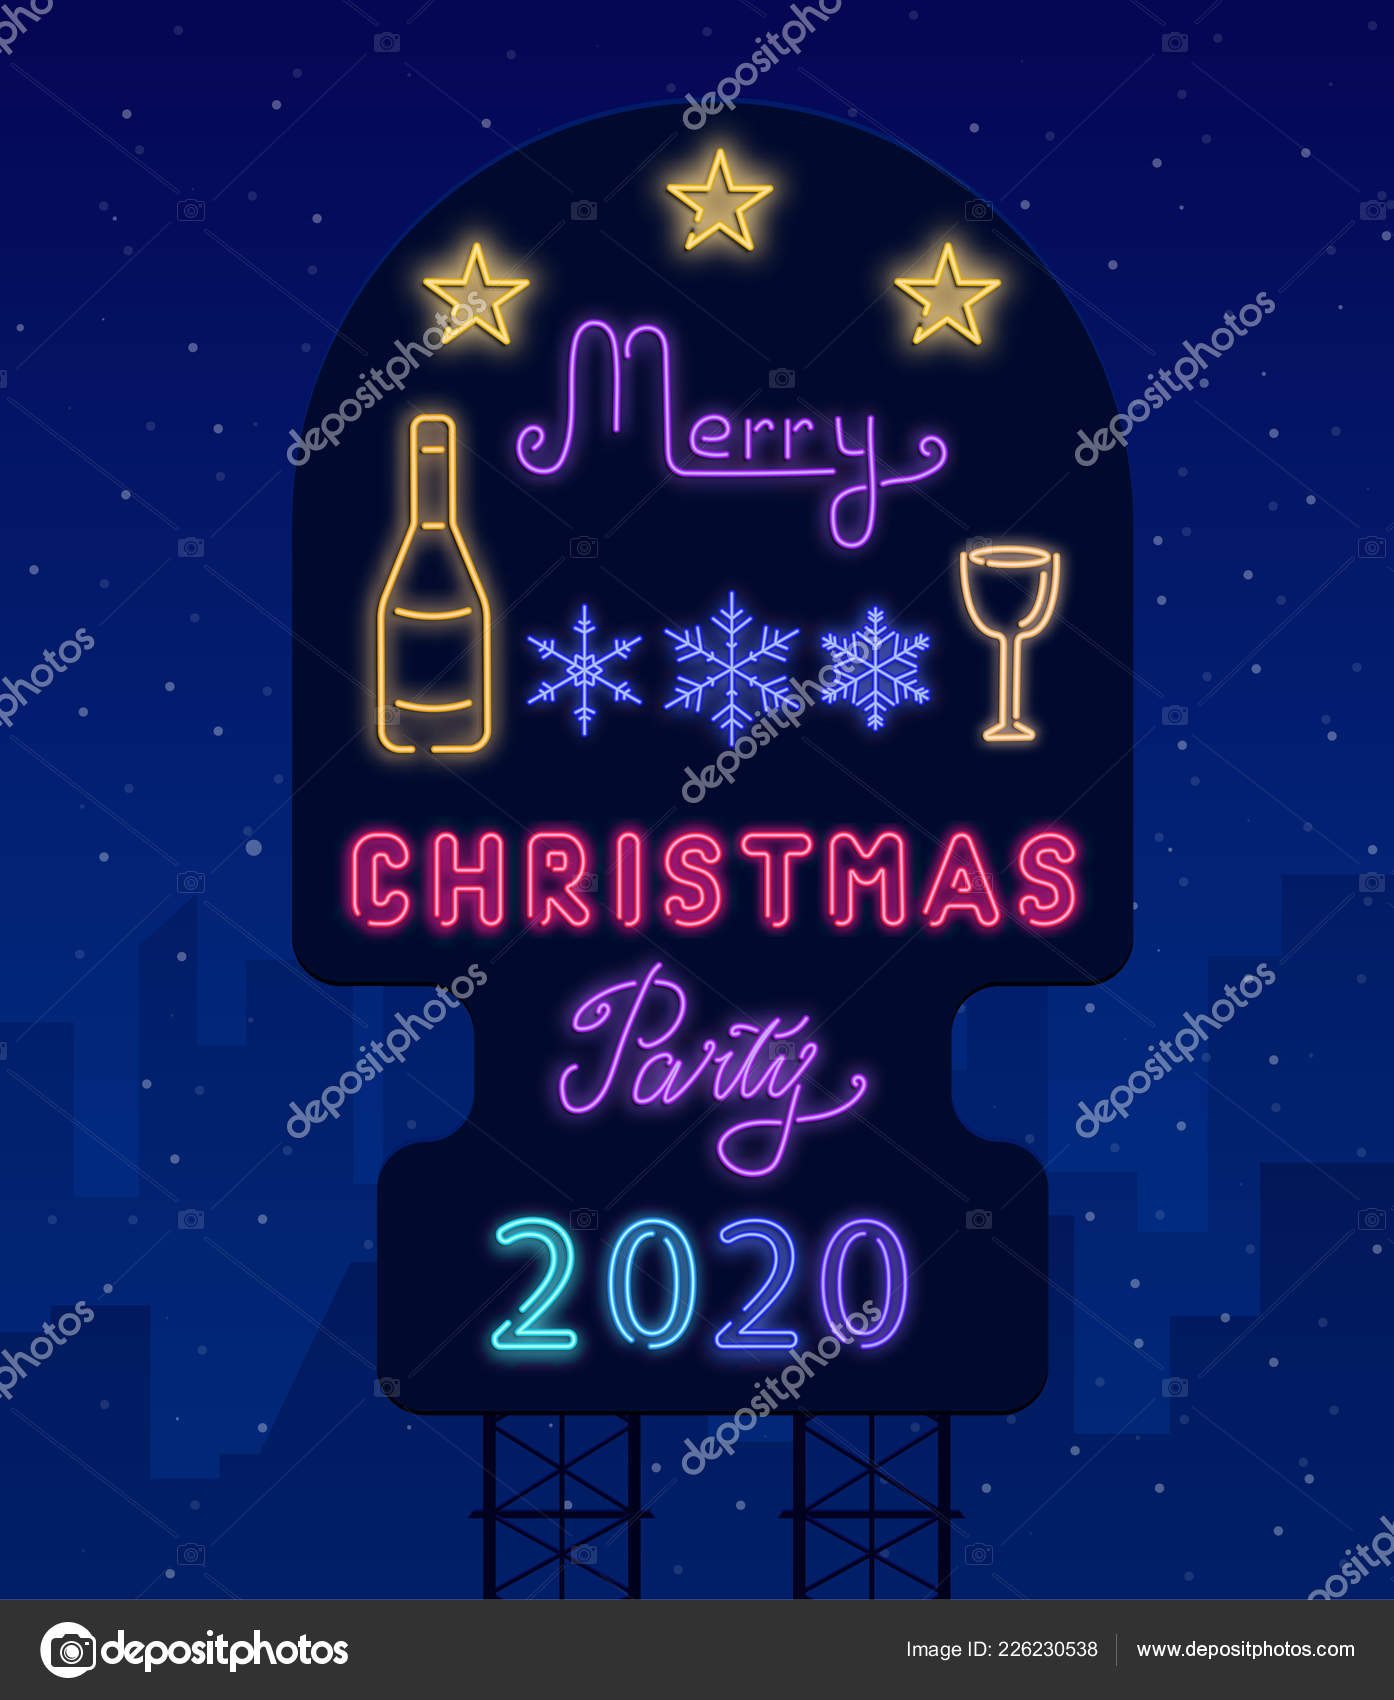 Christmas 2020.Merry Christmas 2020 Party Neon Luminous Urban Poster With